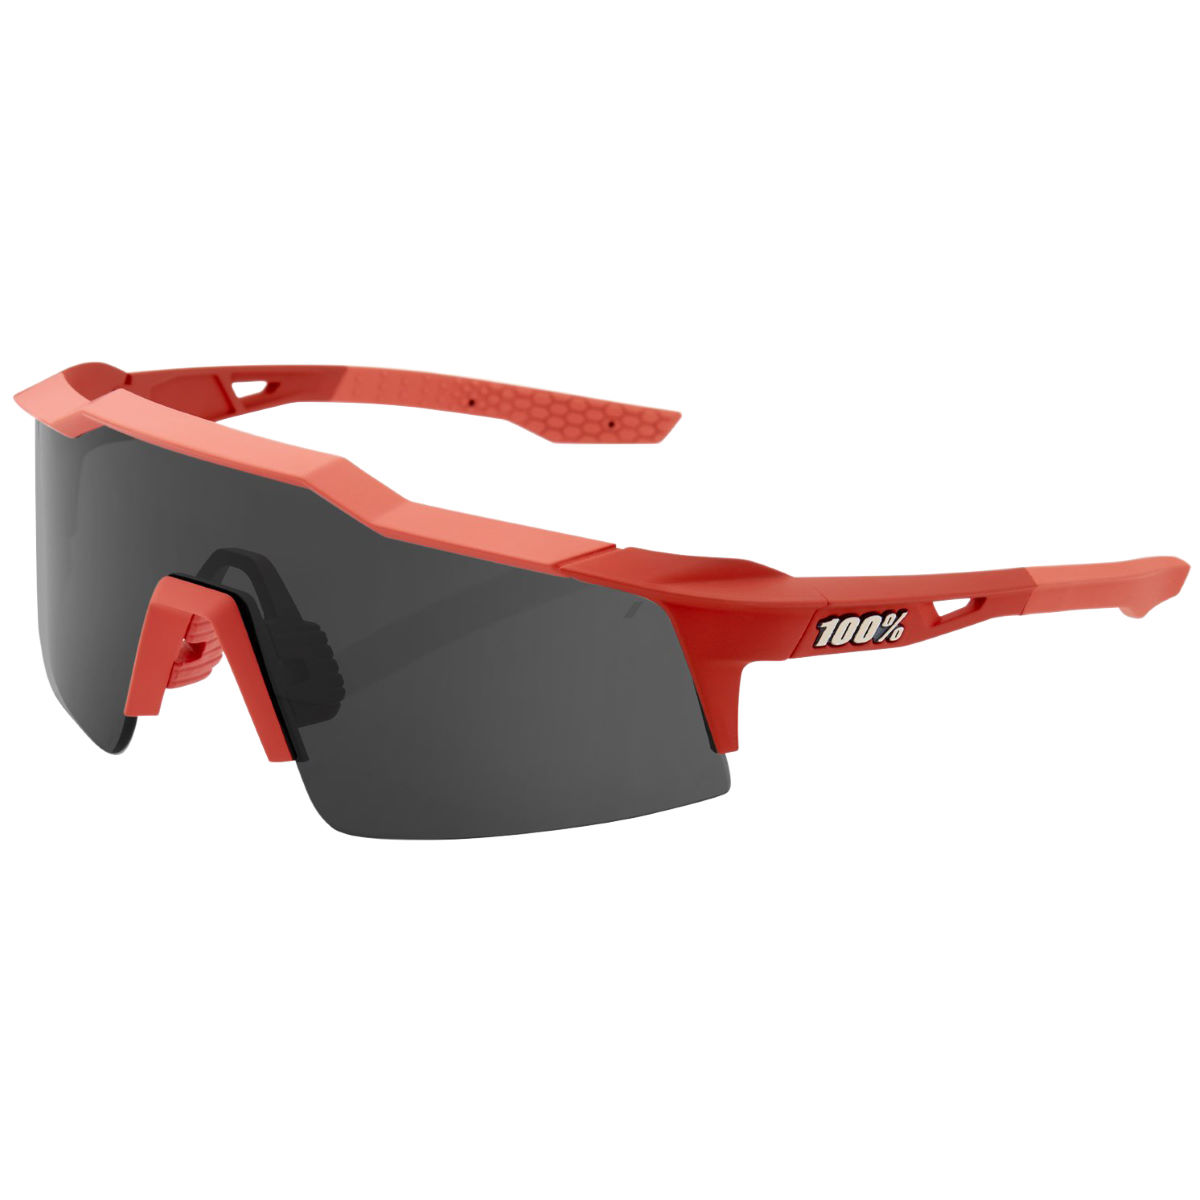 100% Speedcraft Sl Soft Tact Coral Sunglasses - One Size Smoke Lens